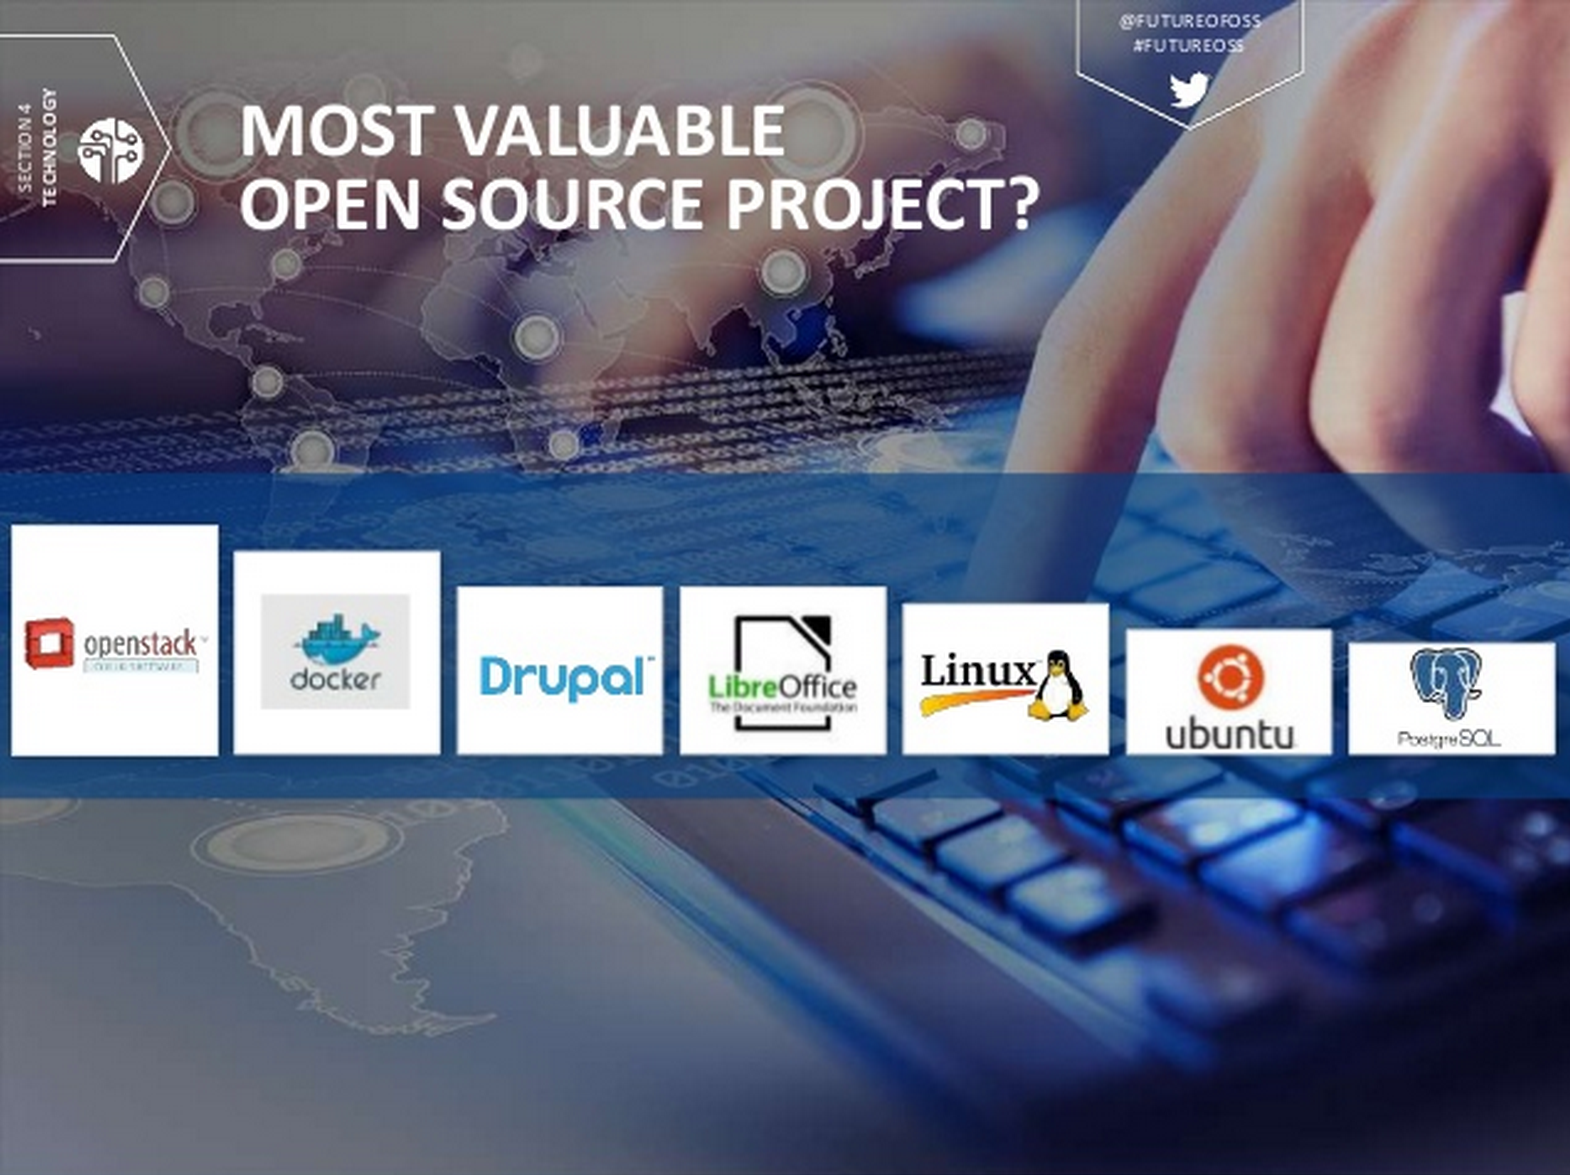 2015 Future of Open Source Survey Results 3